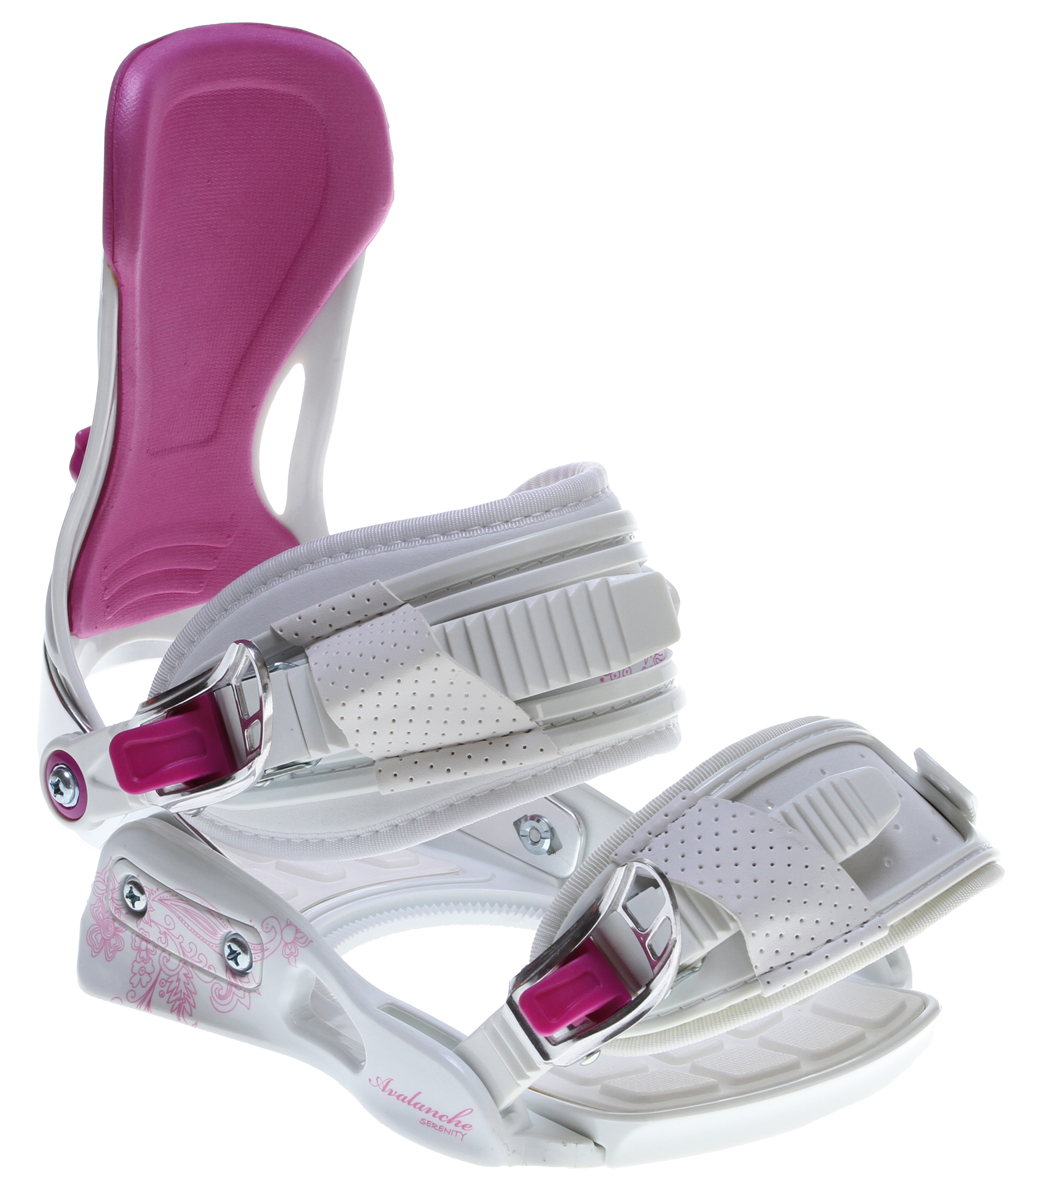 Snowboard Avalanche Serenity Snowboard Bindings - $59.95